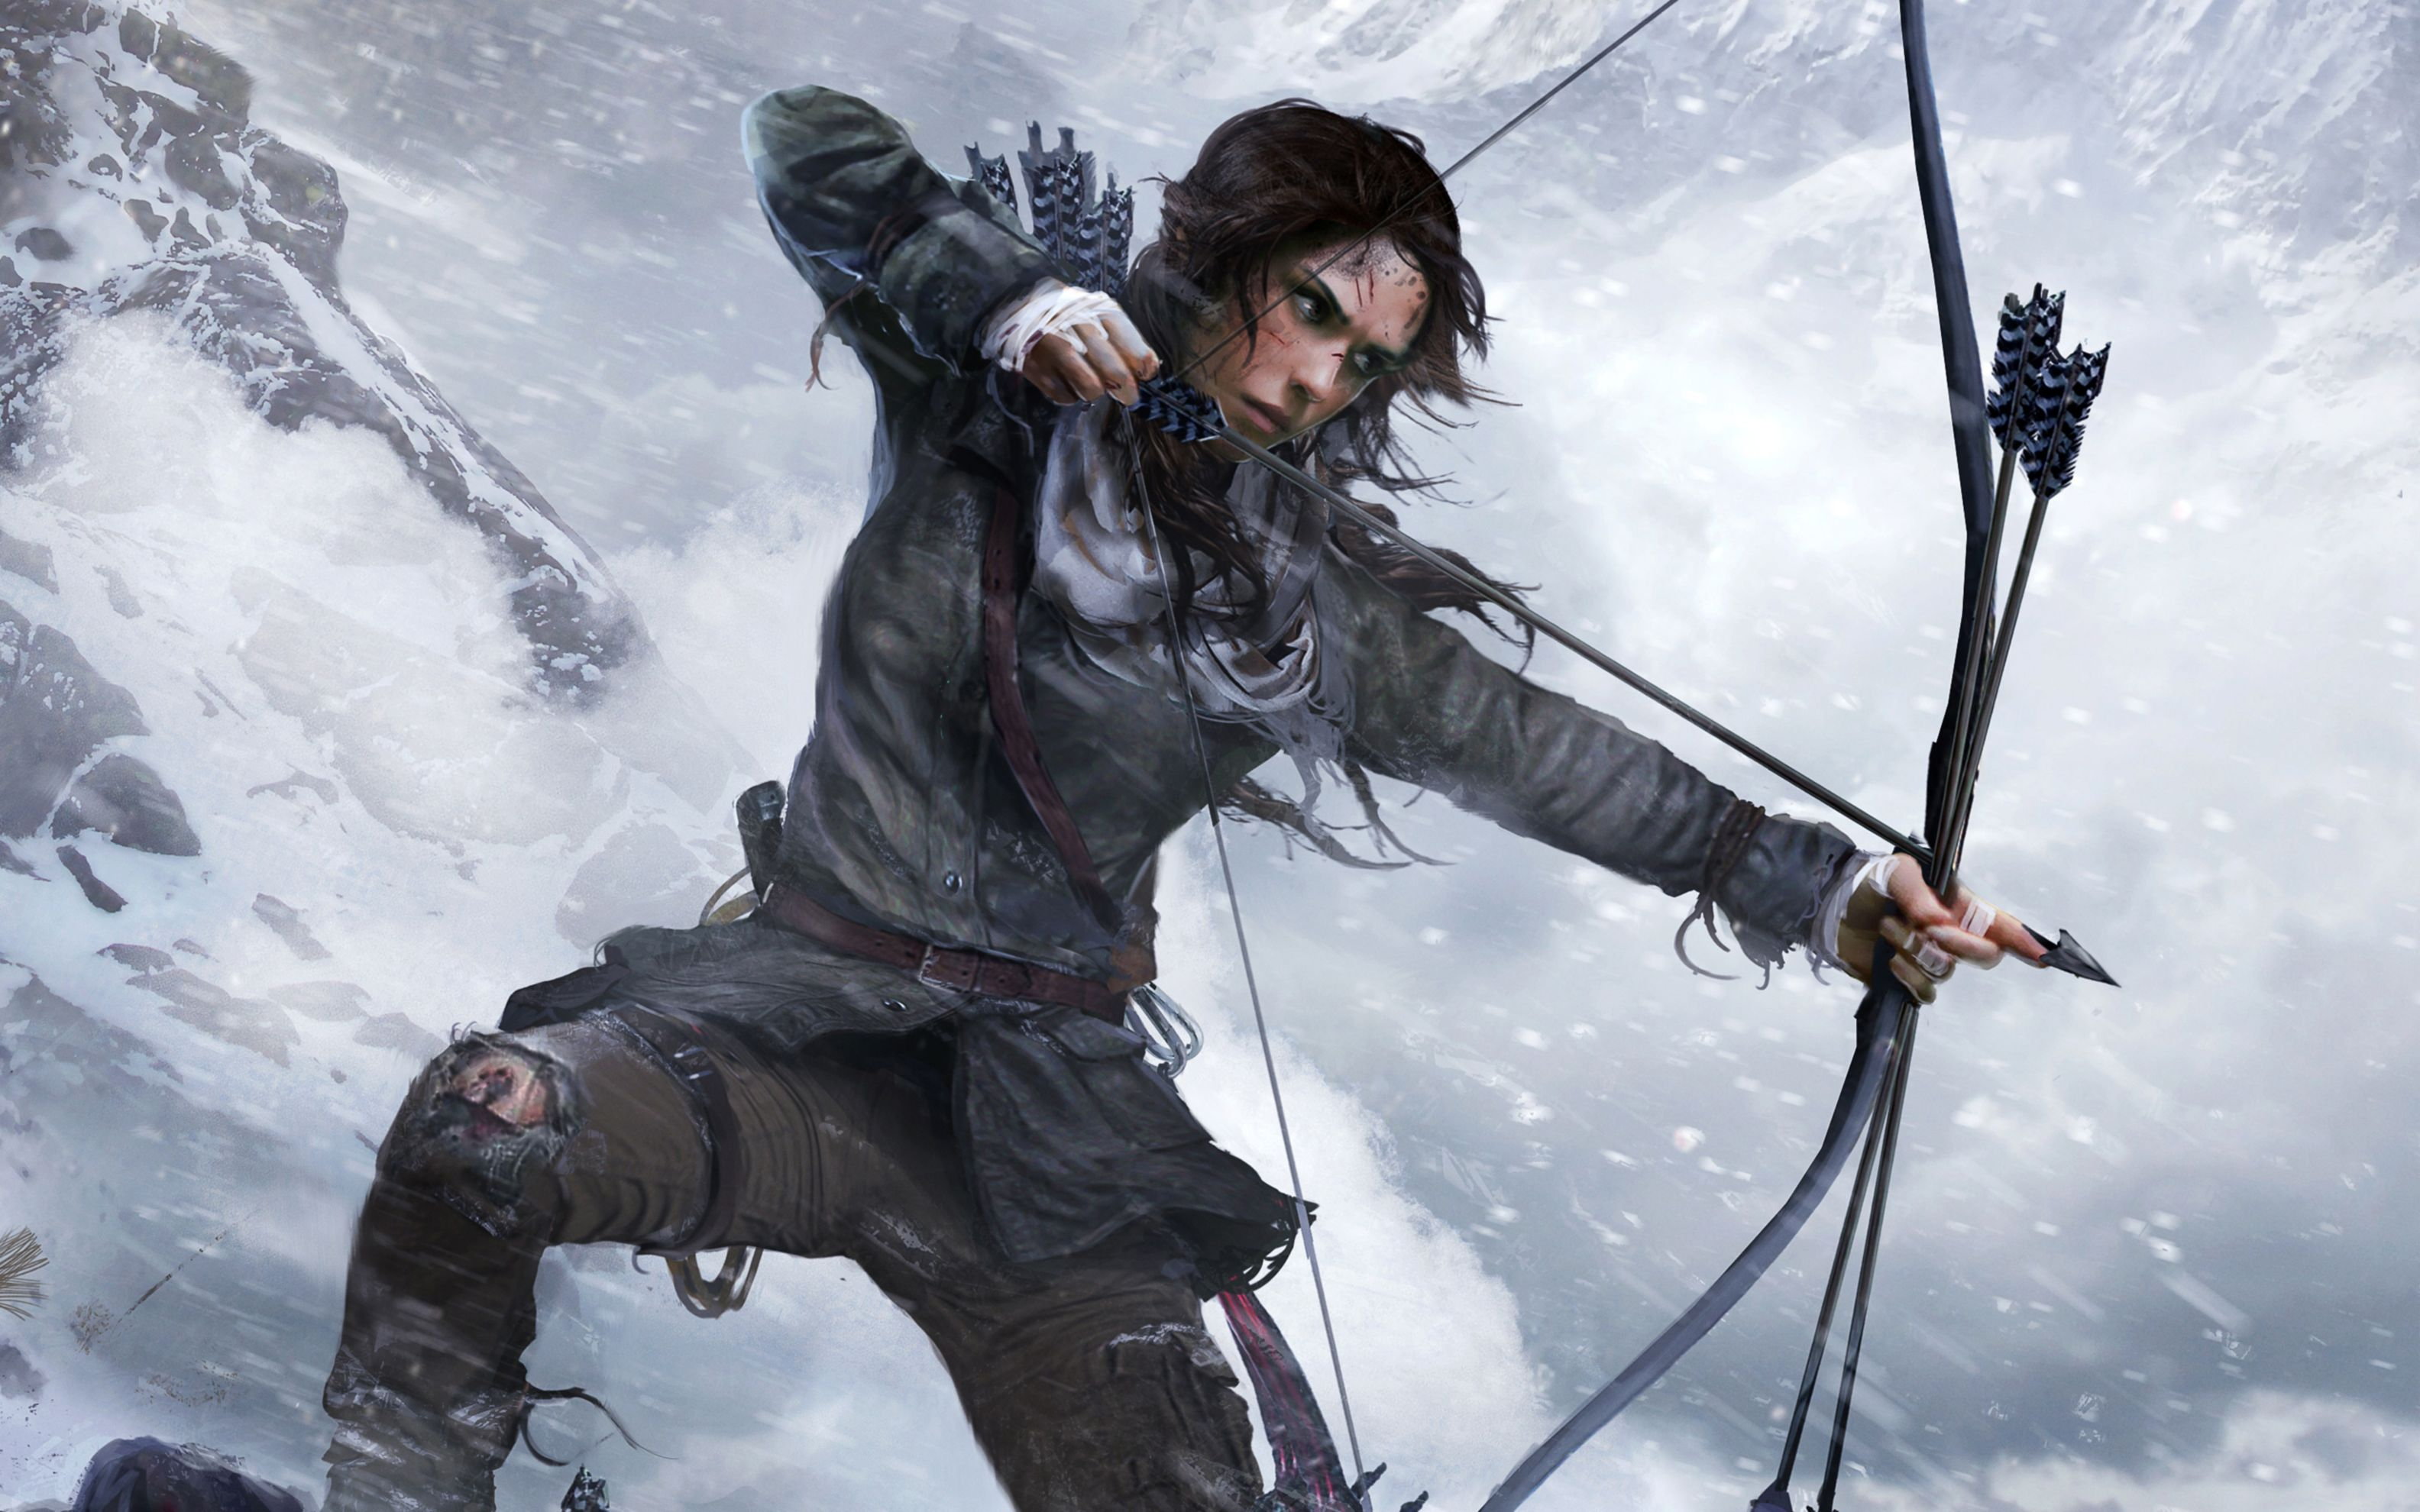 Download free HD Lara Croft Rise Of The Tomb Raider Official Artwork Wide Wallpaper, image